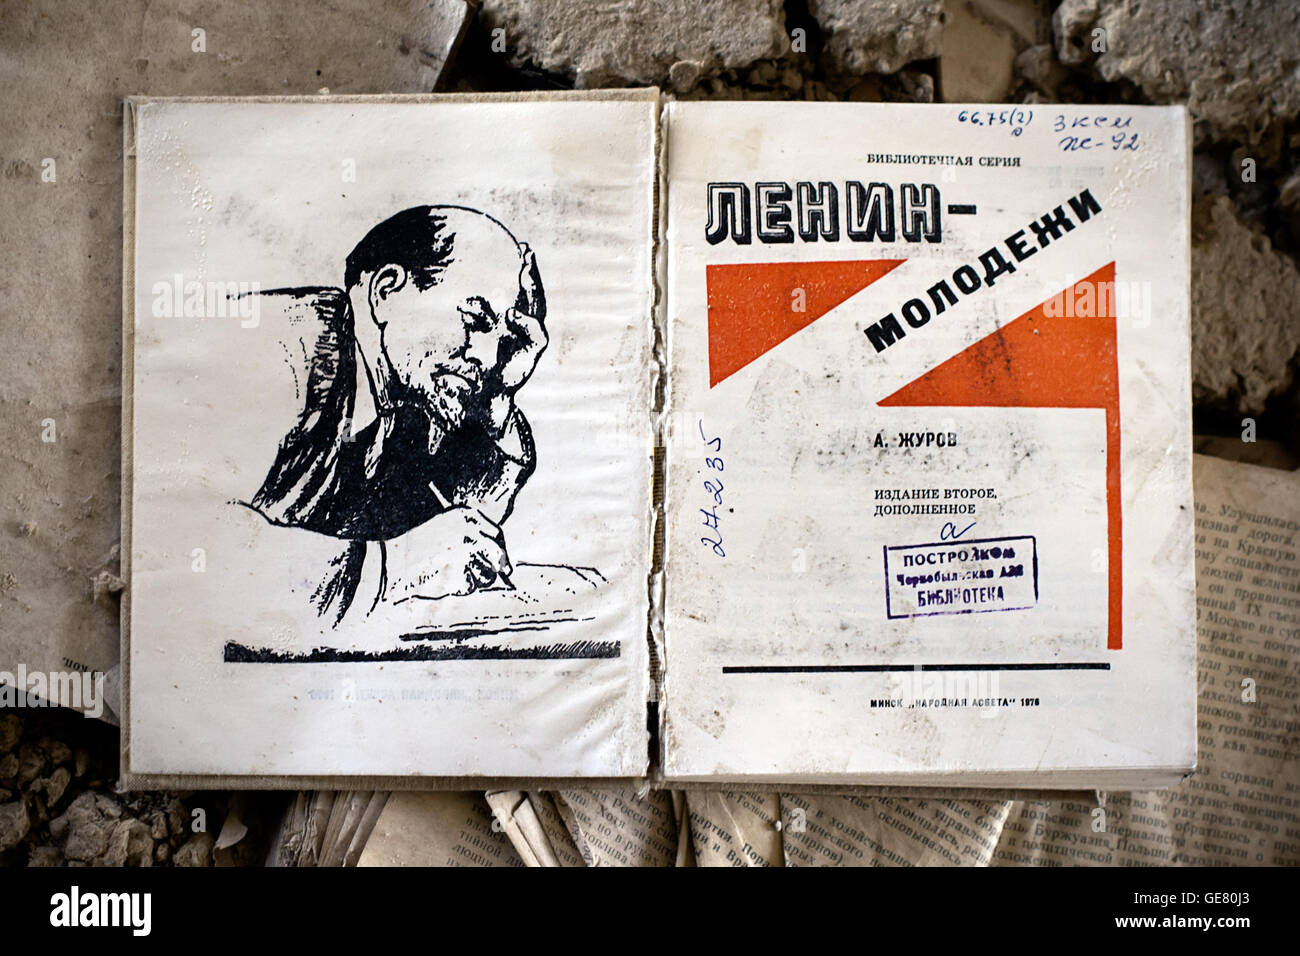 Abandoned books in the Palace of Culture. The abandoned town of Pripyat in the Chernobyl exclusion zone, Ukraine. - Stock Image